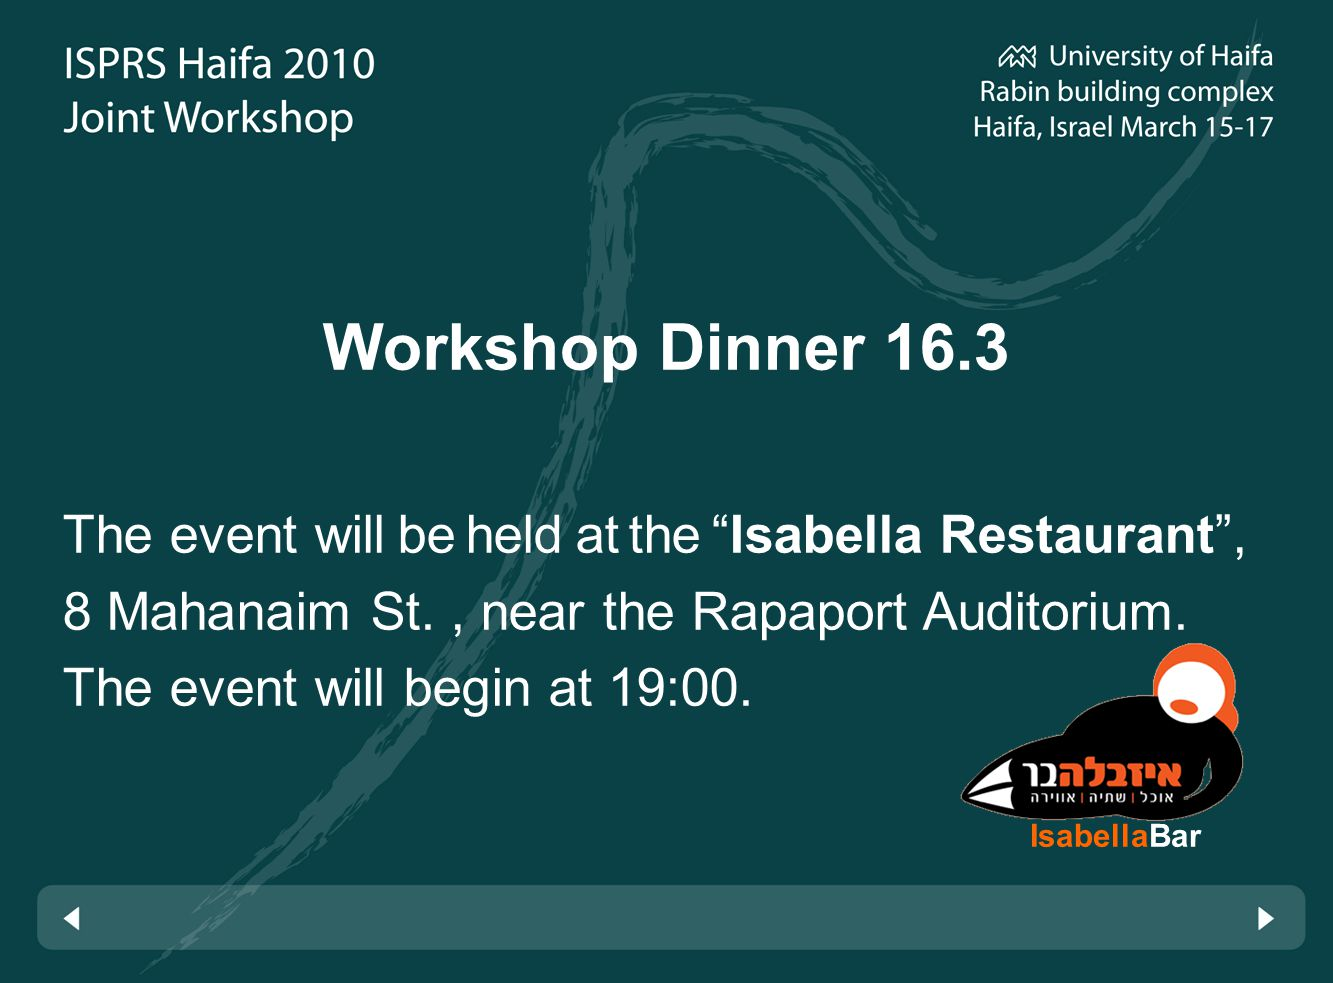 Workshop Dinner 16.3 The event will be held at theIsabella Restaurant, 8 Mahanaim St., near the Rapaport Auditorium.